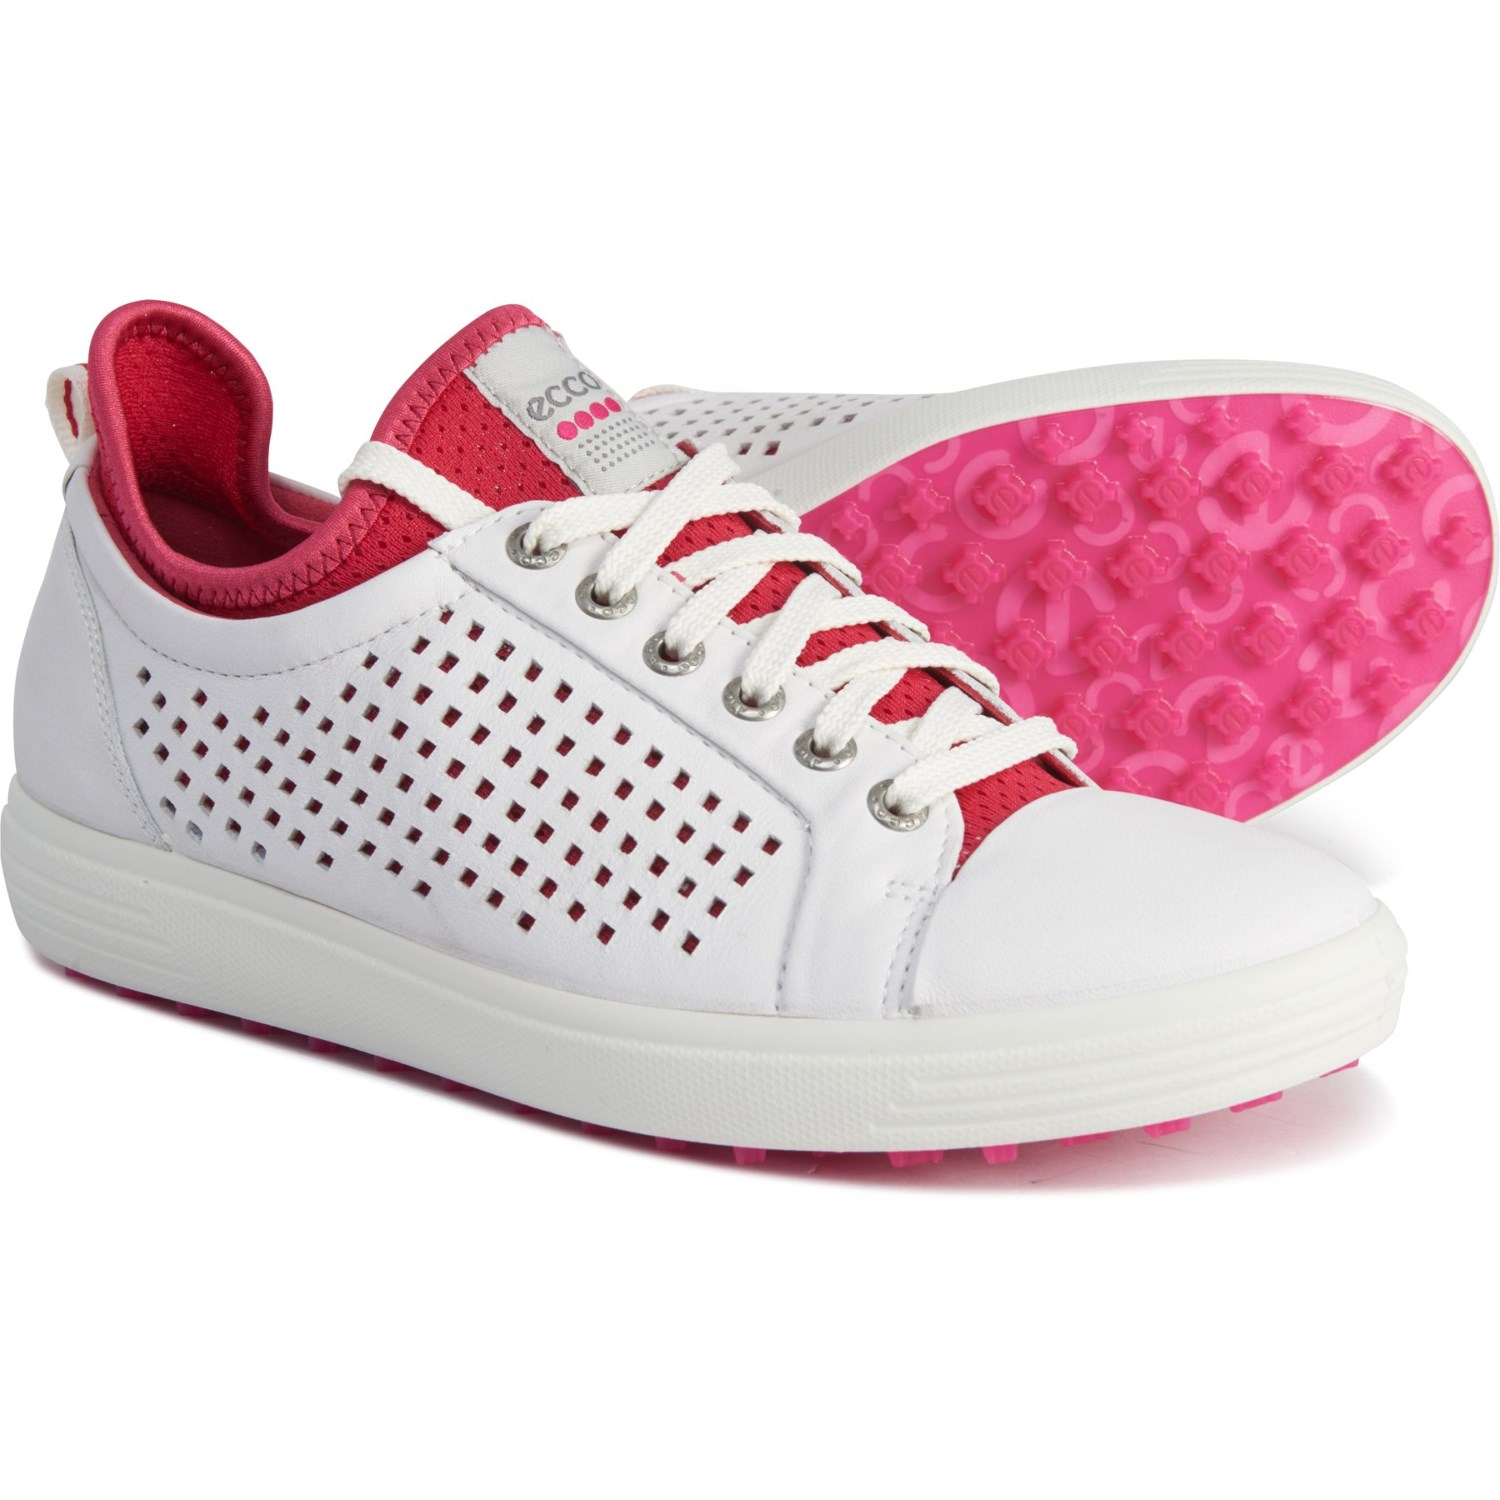 6b4a09ae ECCO Casual Hybrid Golf Shoes (For Women) - Save 44%